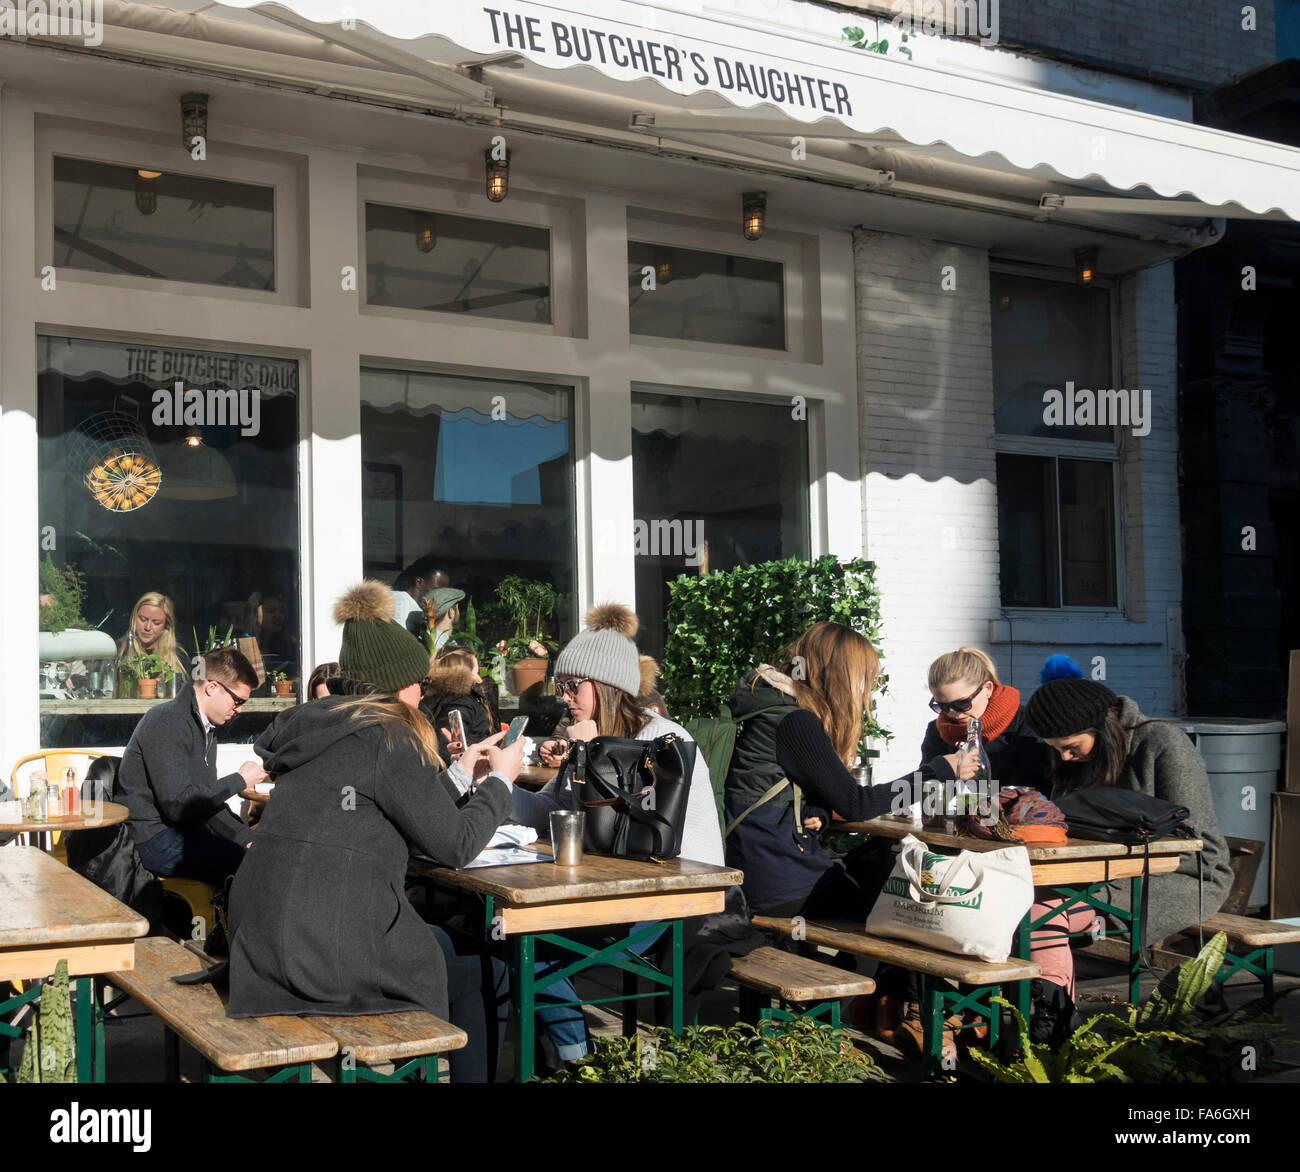 Good Alfresco Dining At An Outdoor Cafe On A Cold Day In New York, With Everyone